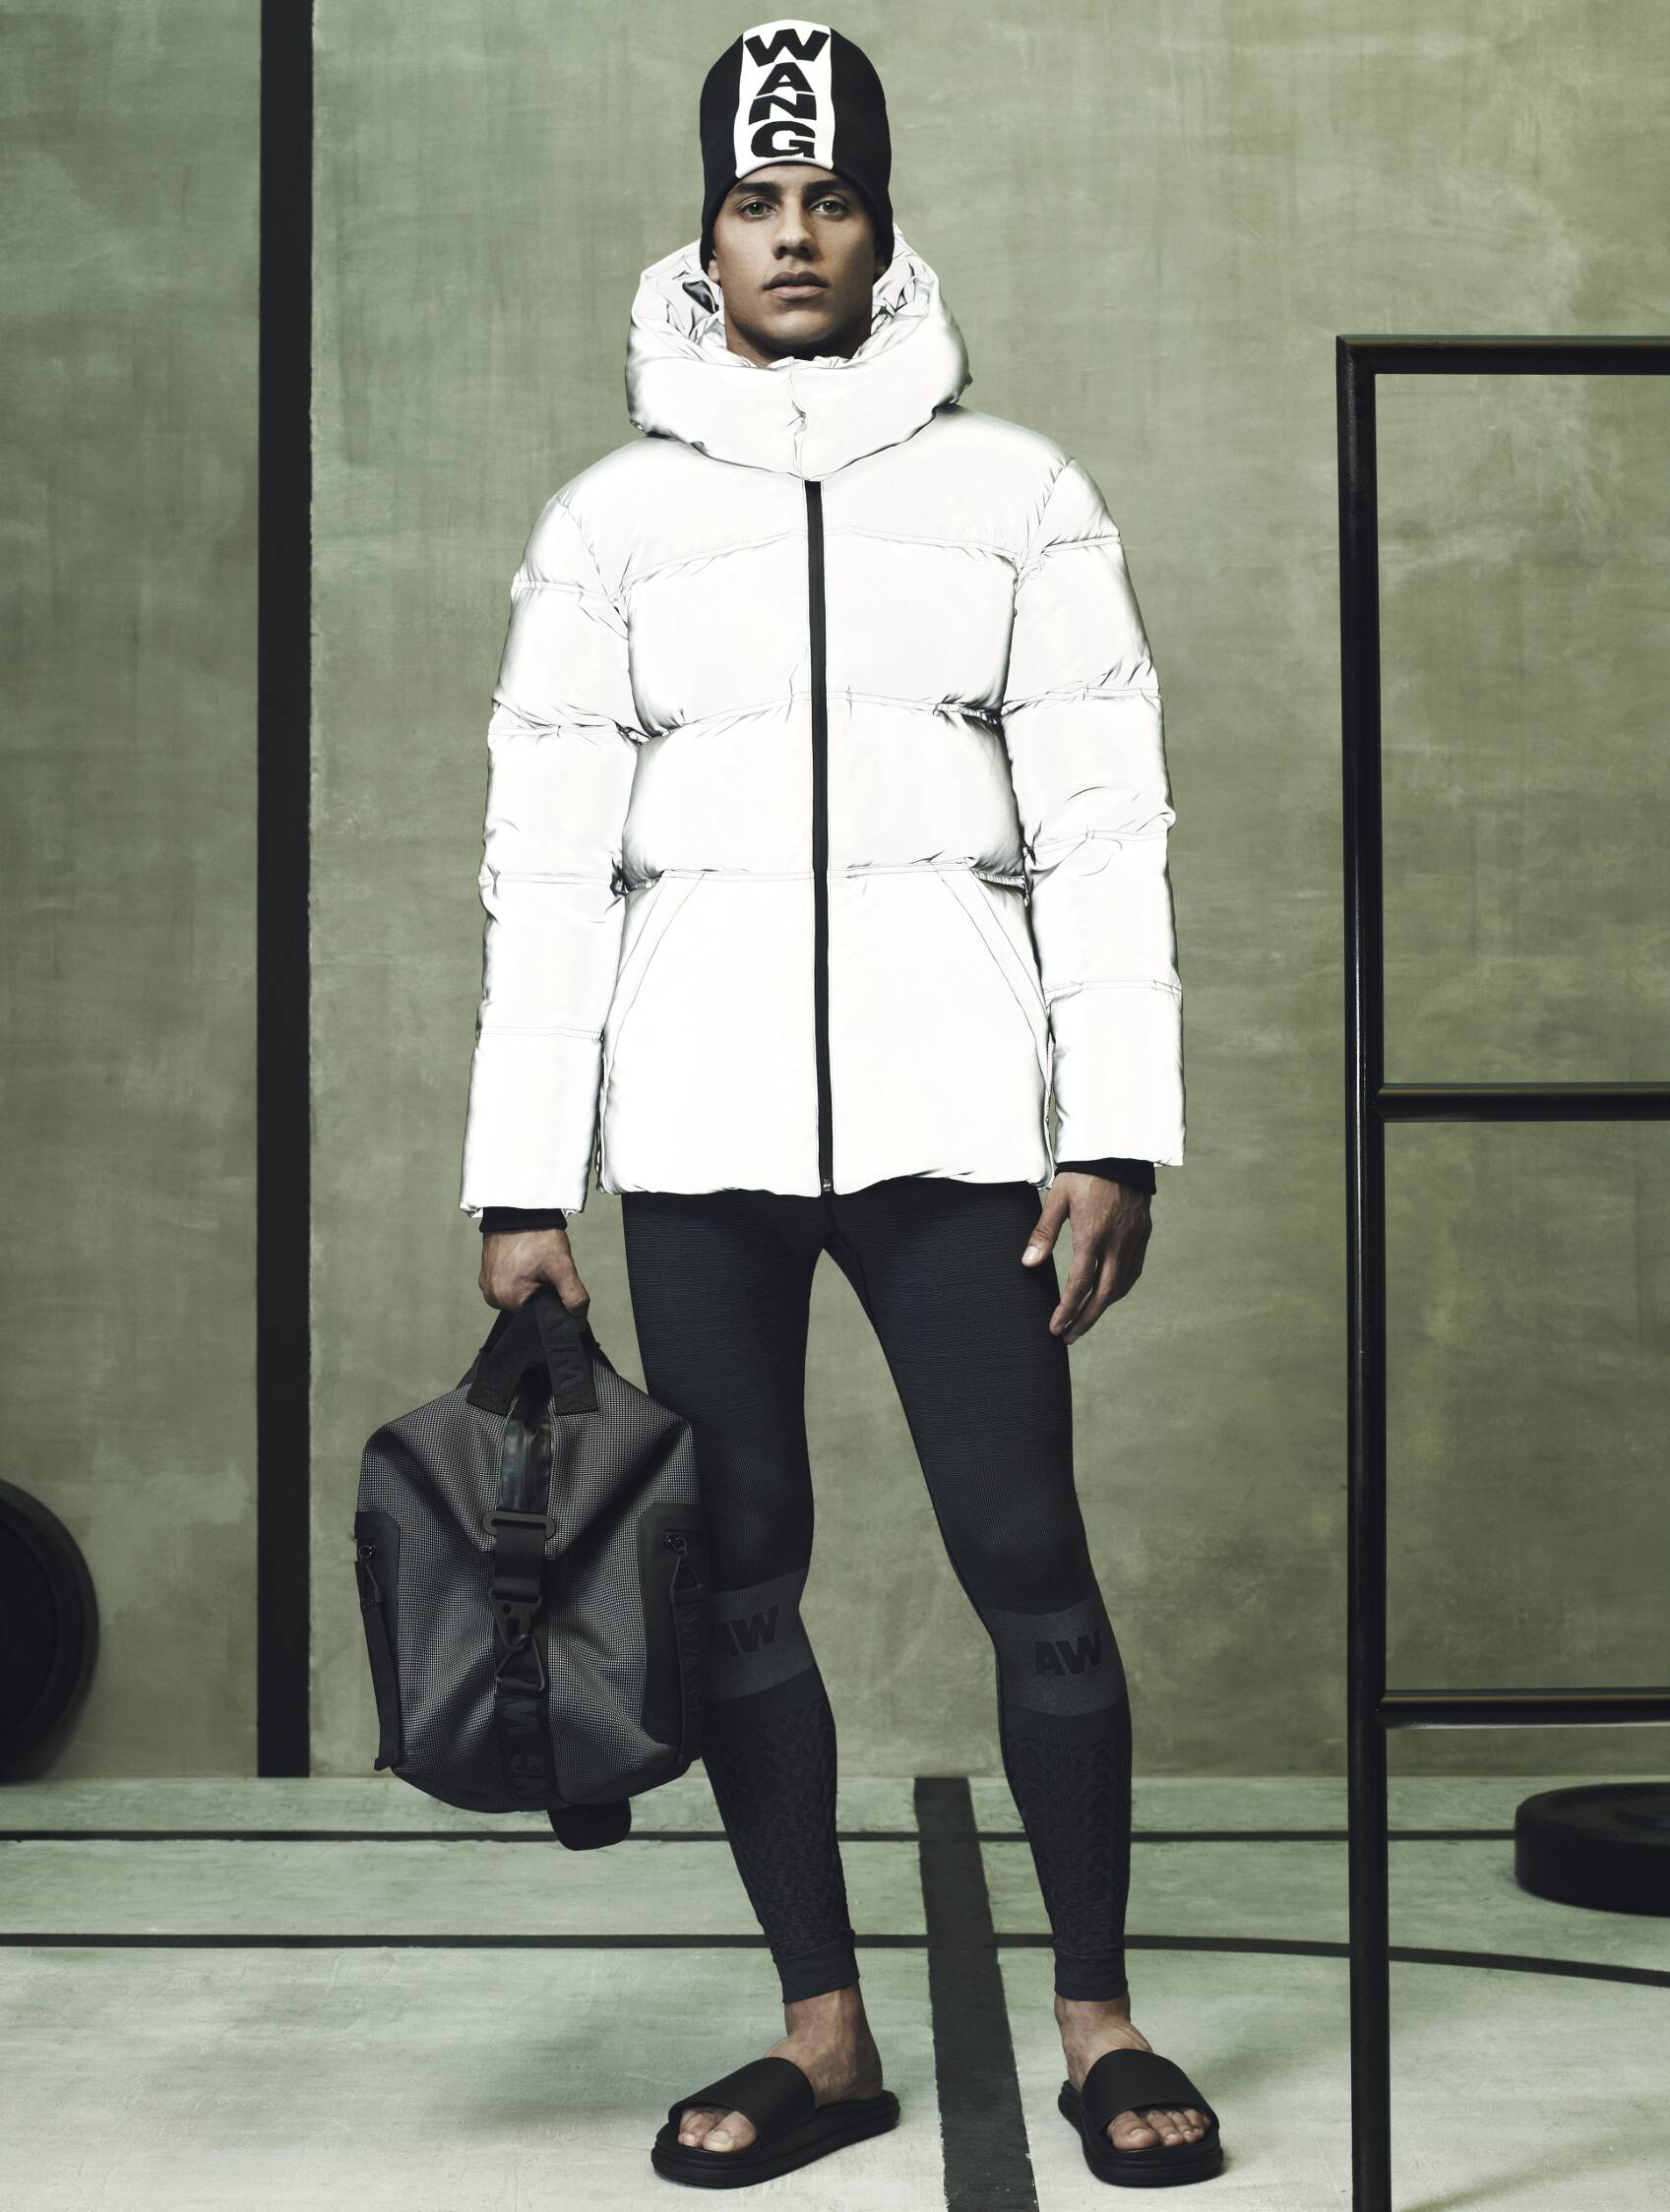 Alexander Wang for H&M Man Lookbook